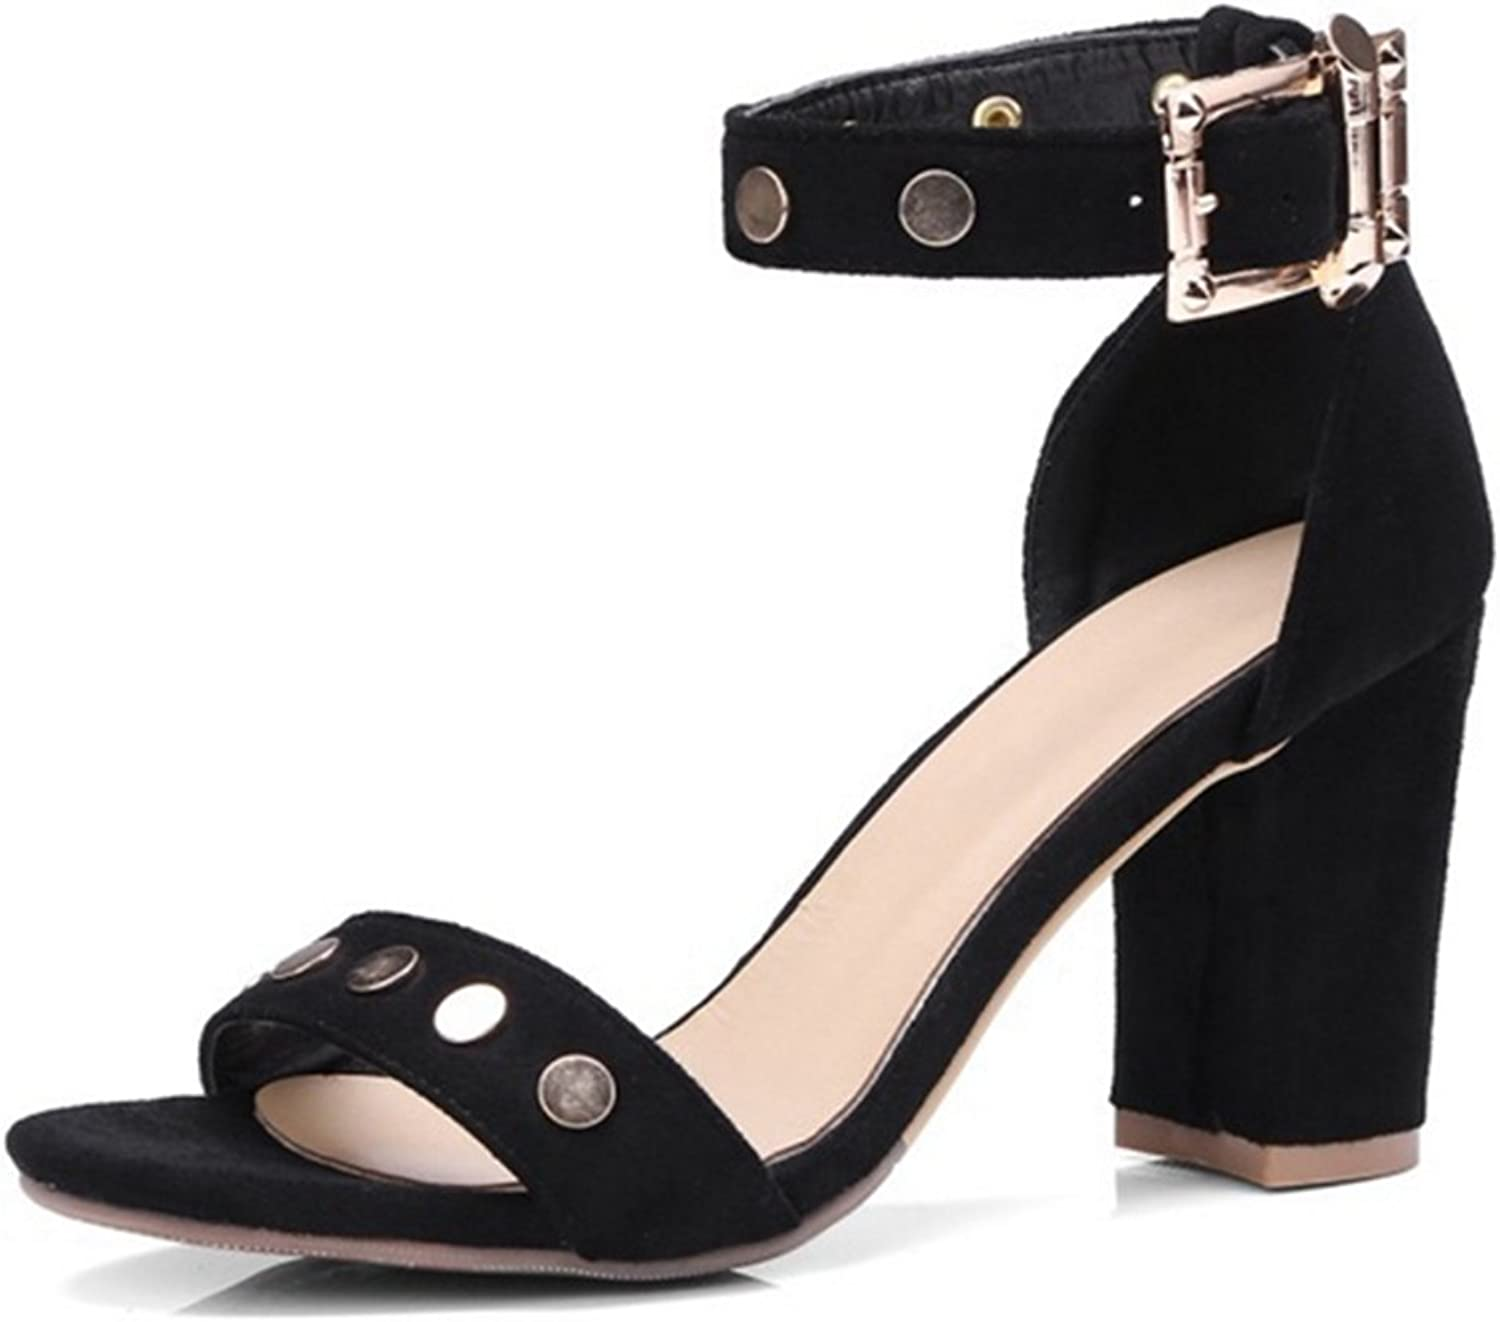 CUTEHEELS All Match Sandals with Chunky Heel and Large for Fashion Women